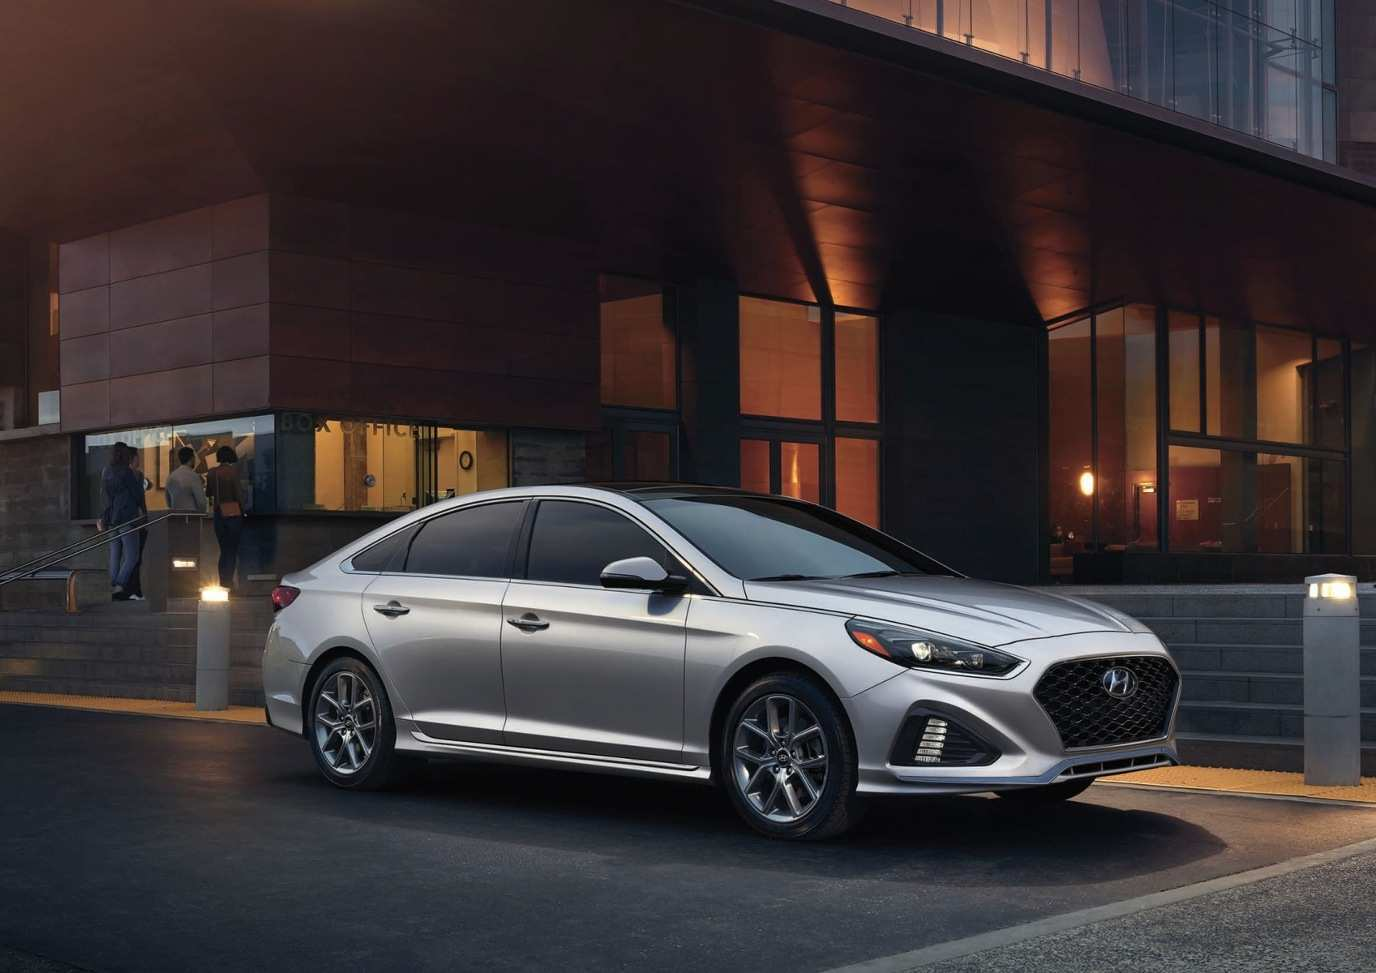 15 New 2020 Hyundai Sonata Brochure Reviews with 2020 Hyundai Sonata Brochure